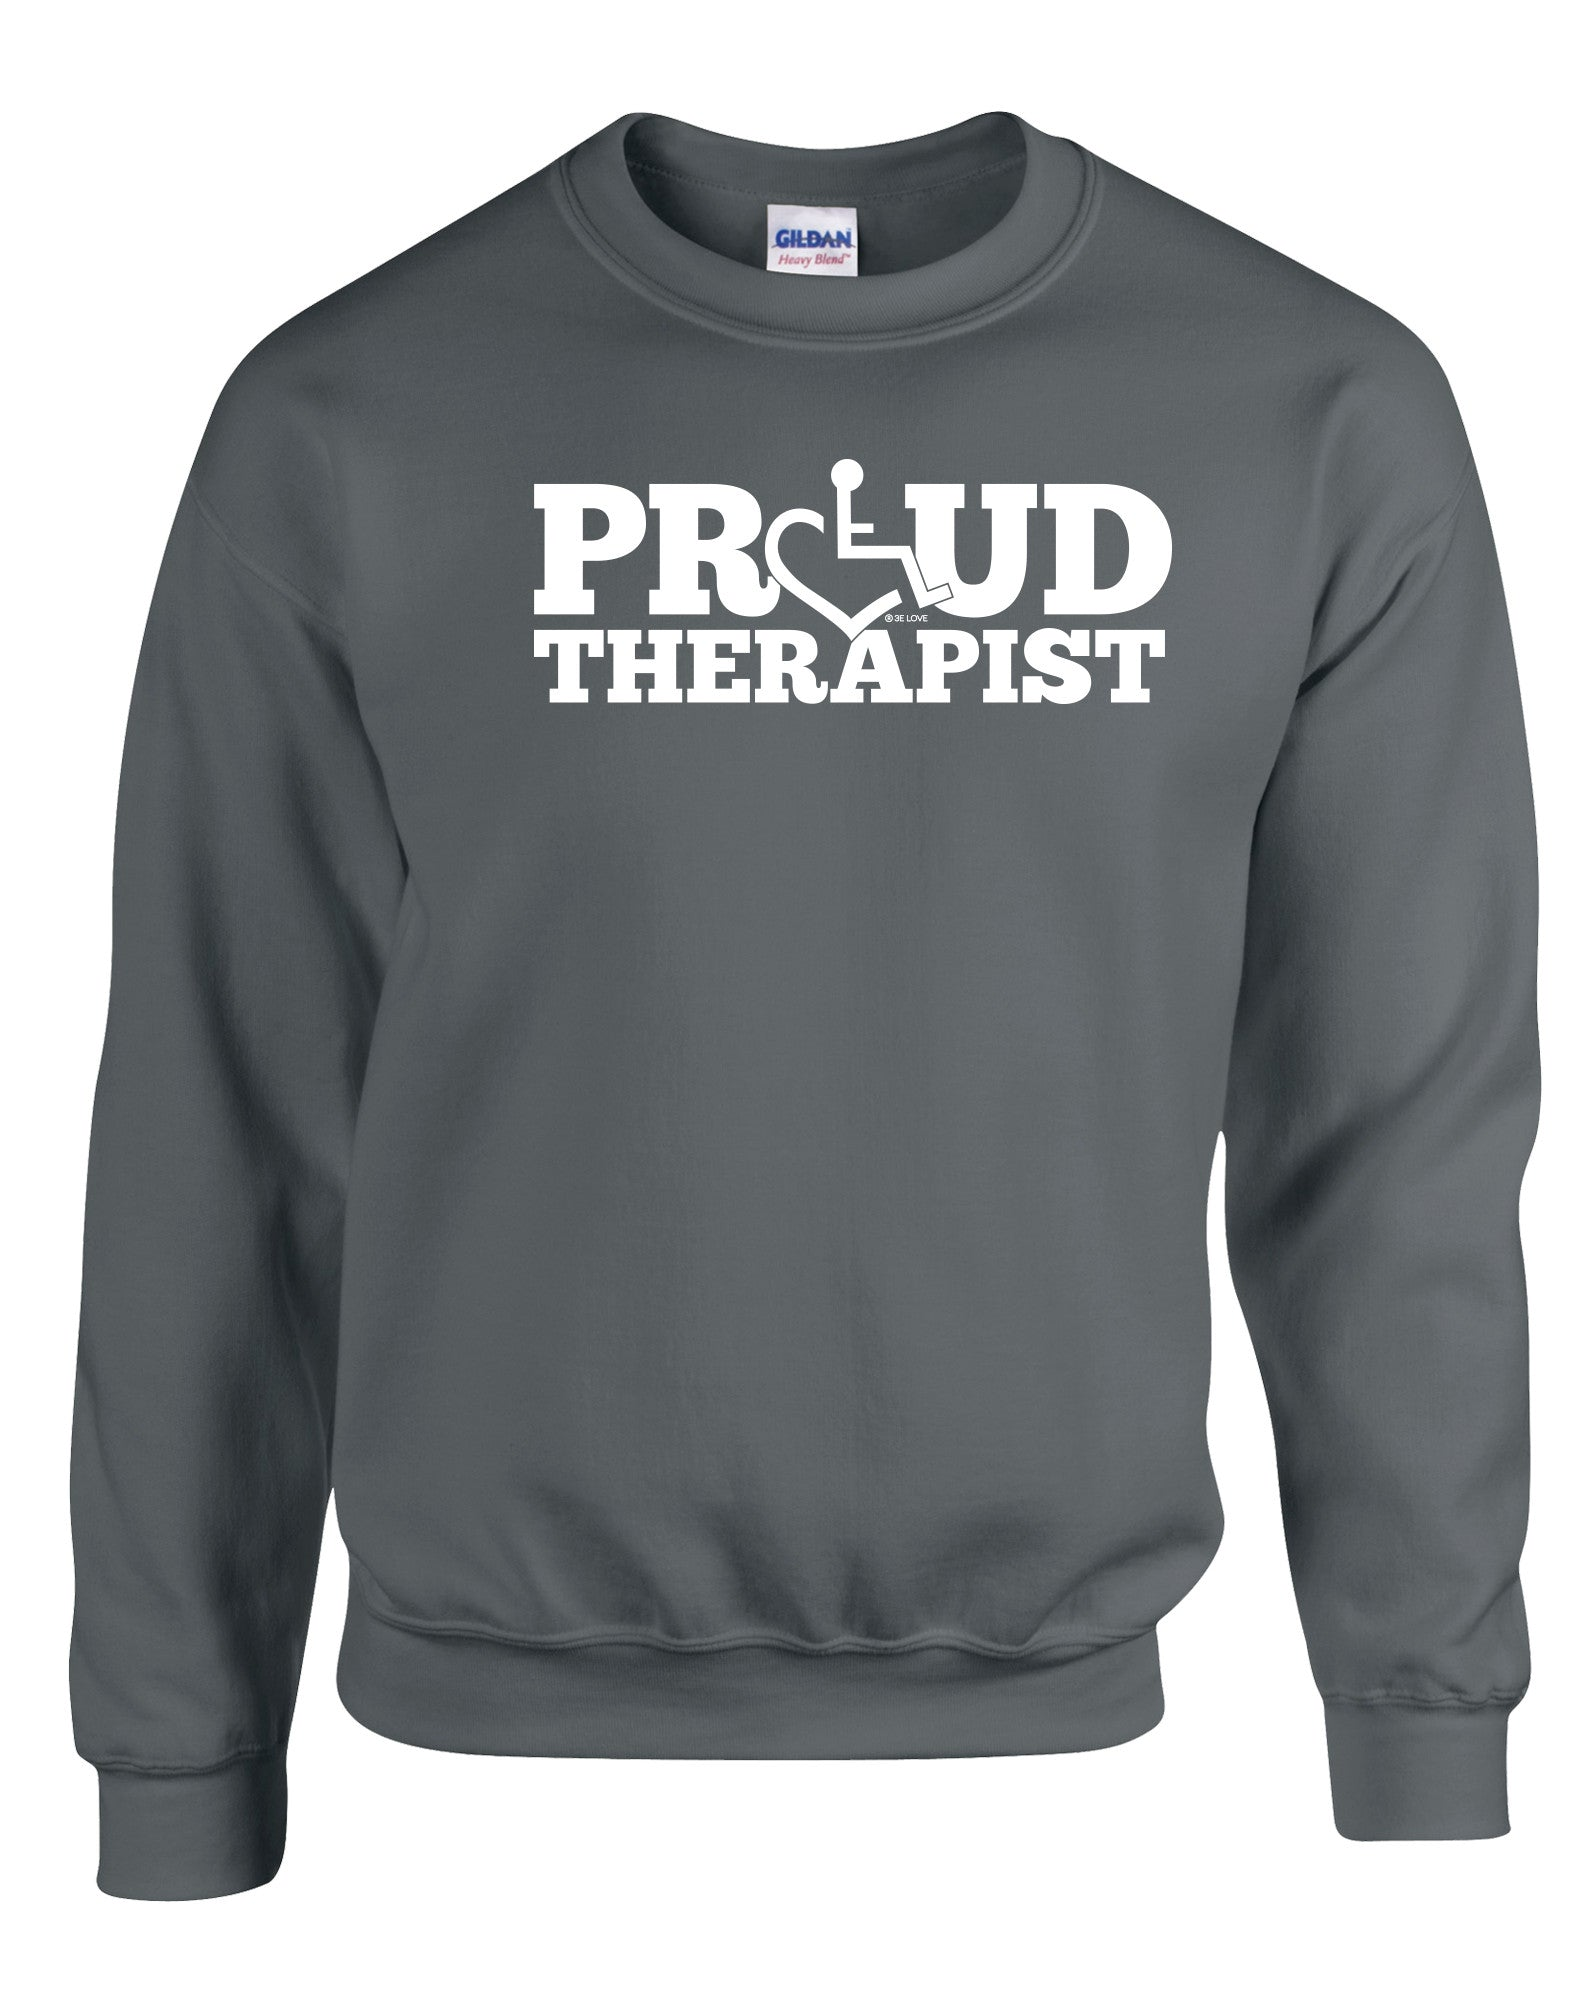 Proud Therapist Crewneck Sweatshirt